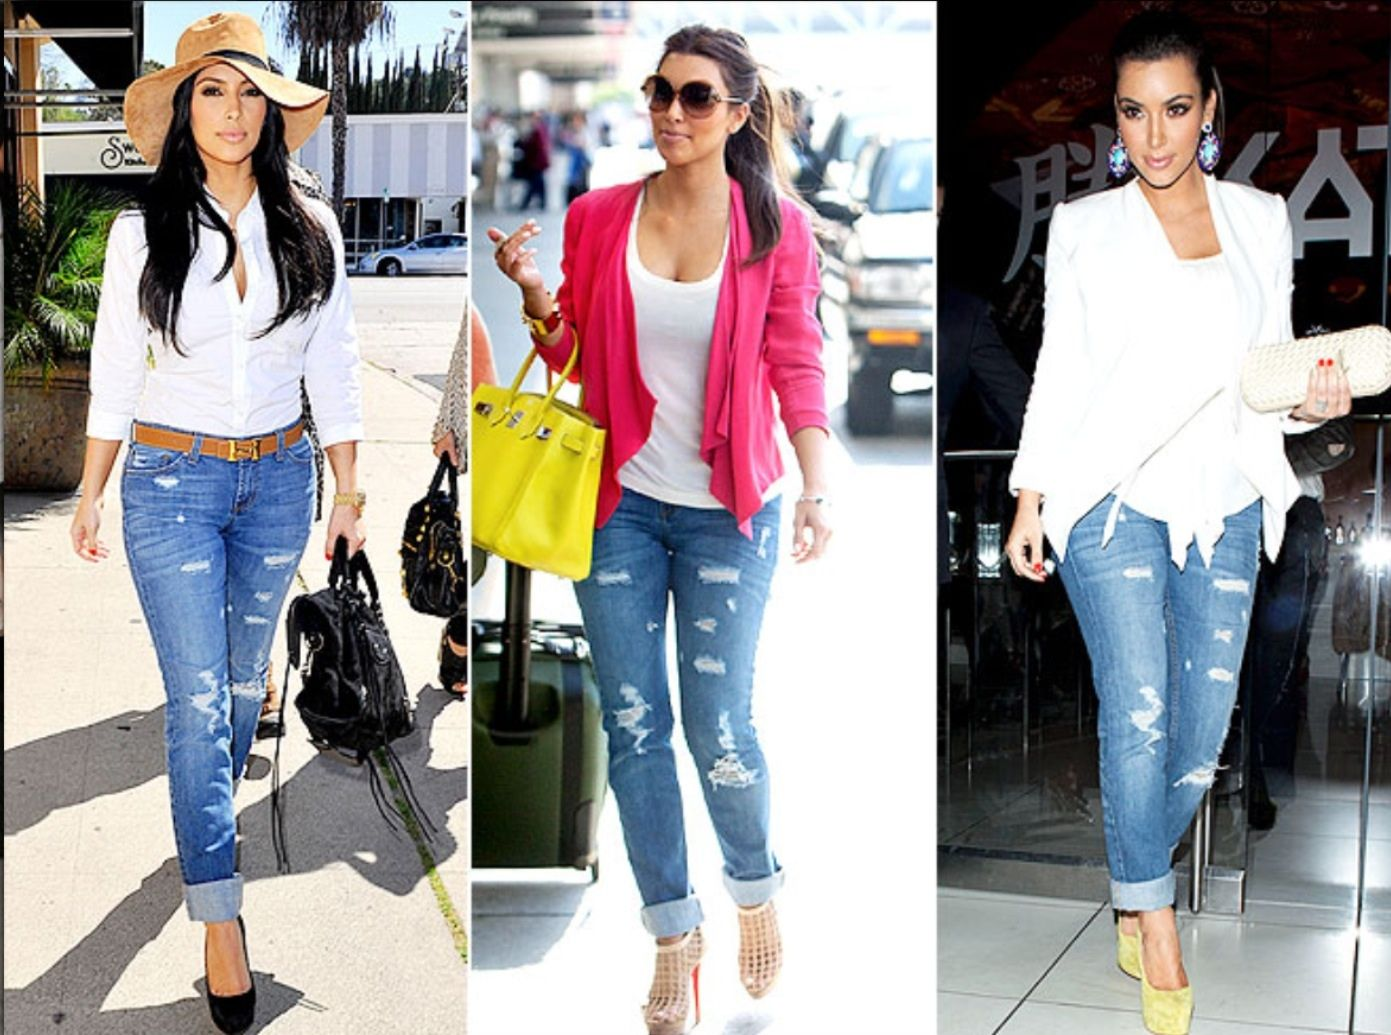 Same jeans different looks